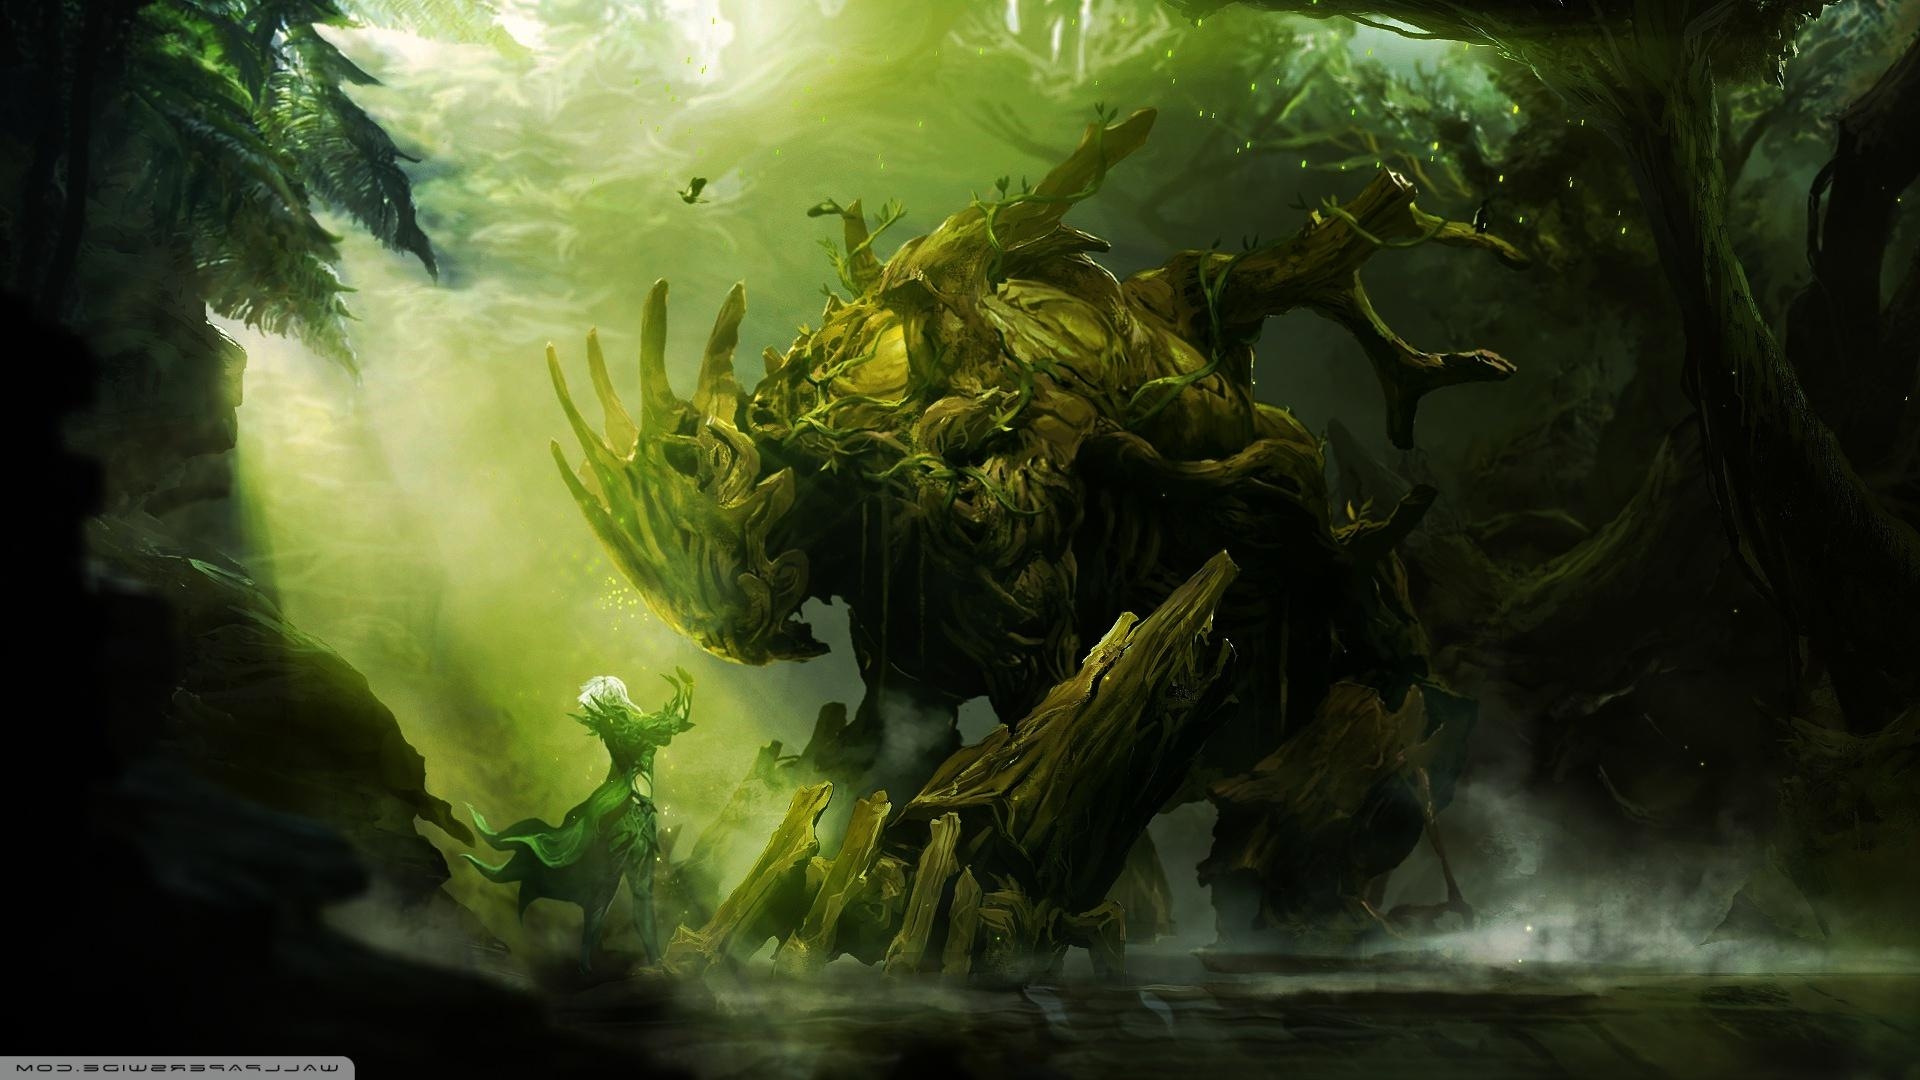 Gw2 Path Of Fire Wallpaper Posted By Ryan Sellers